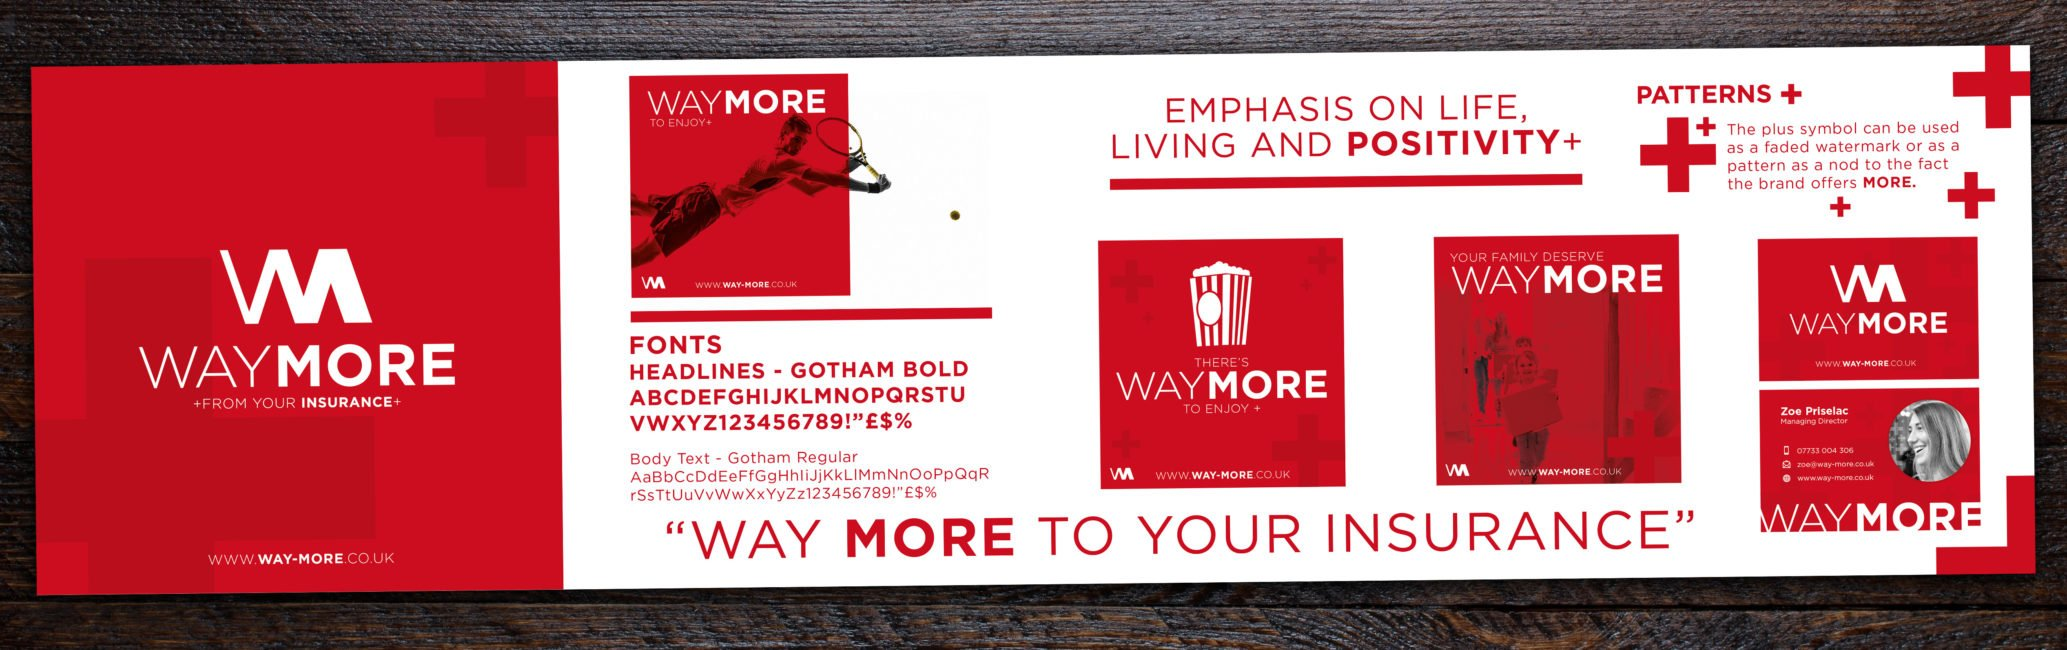 Stylescape for Way More Insurance